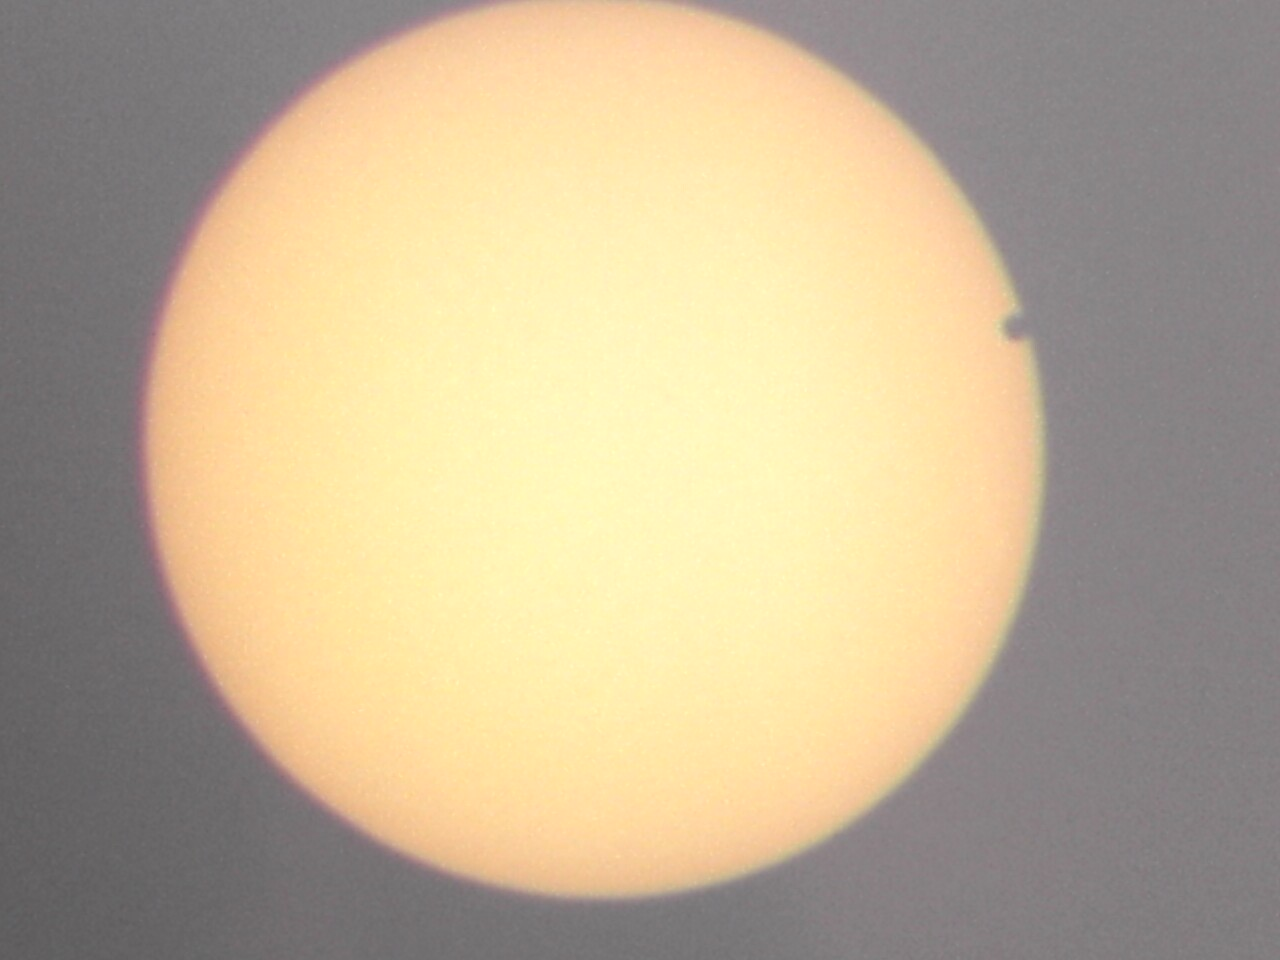 Image of Venus Transiting Sun, as seen from Pittsburgh 2004 June 8